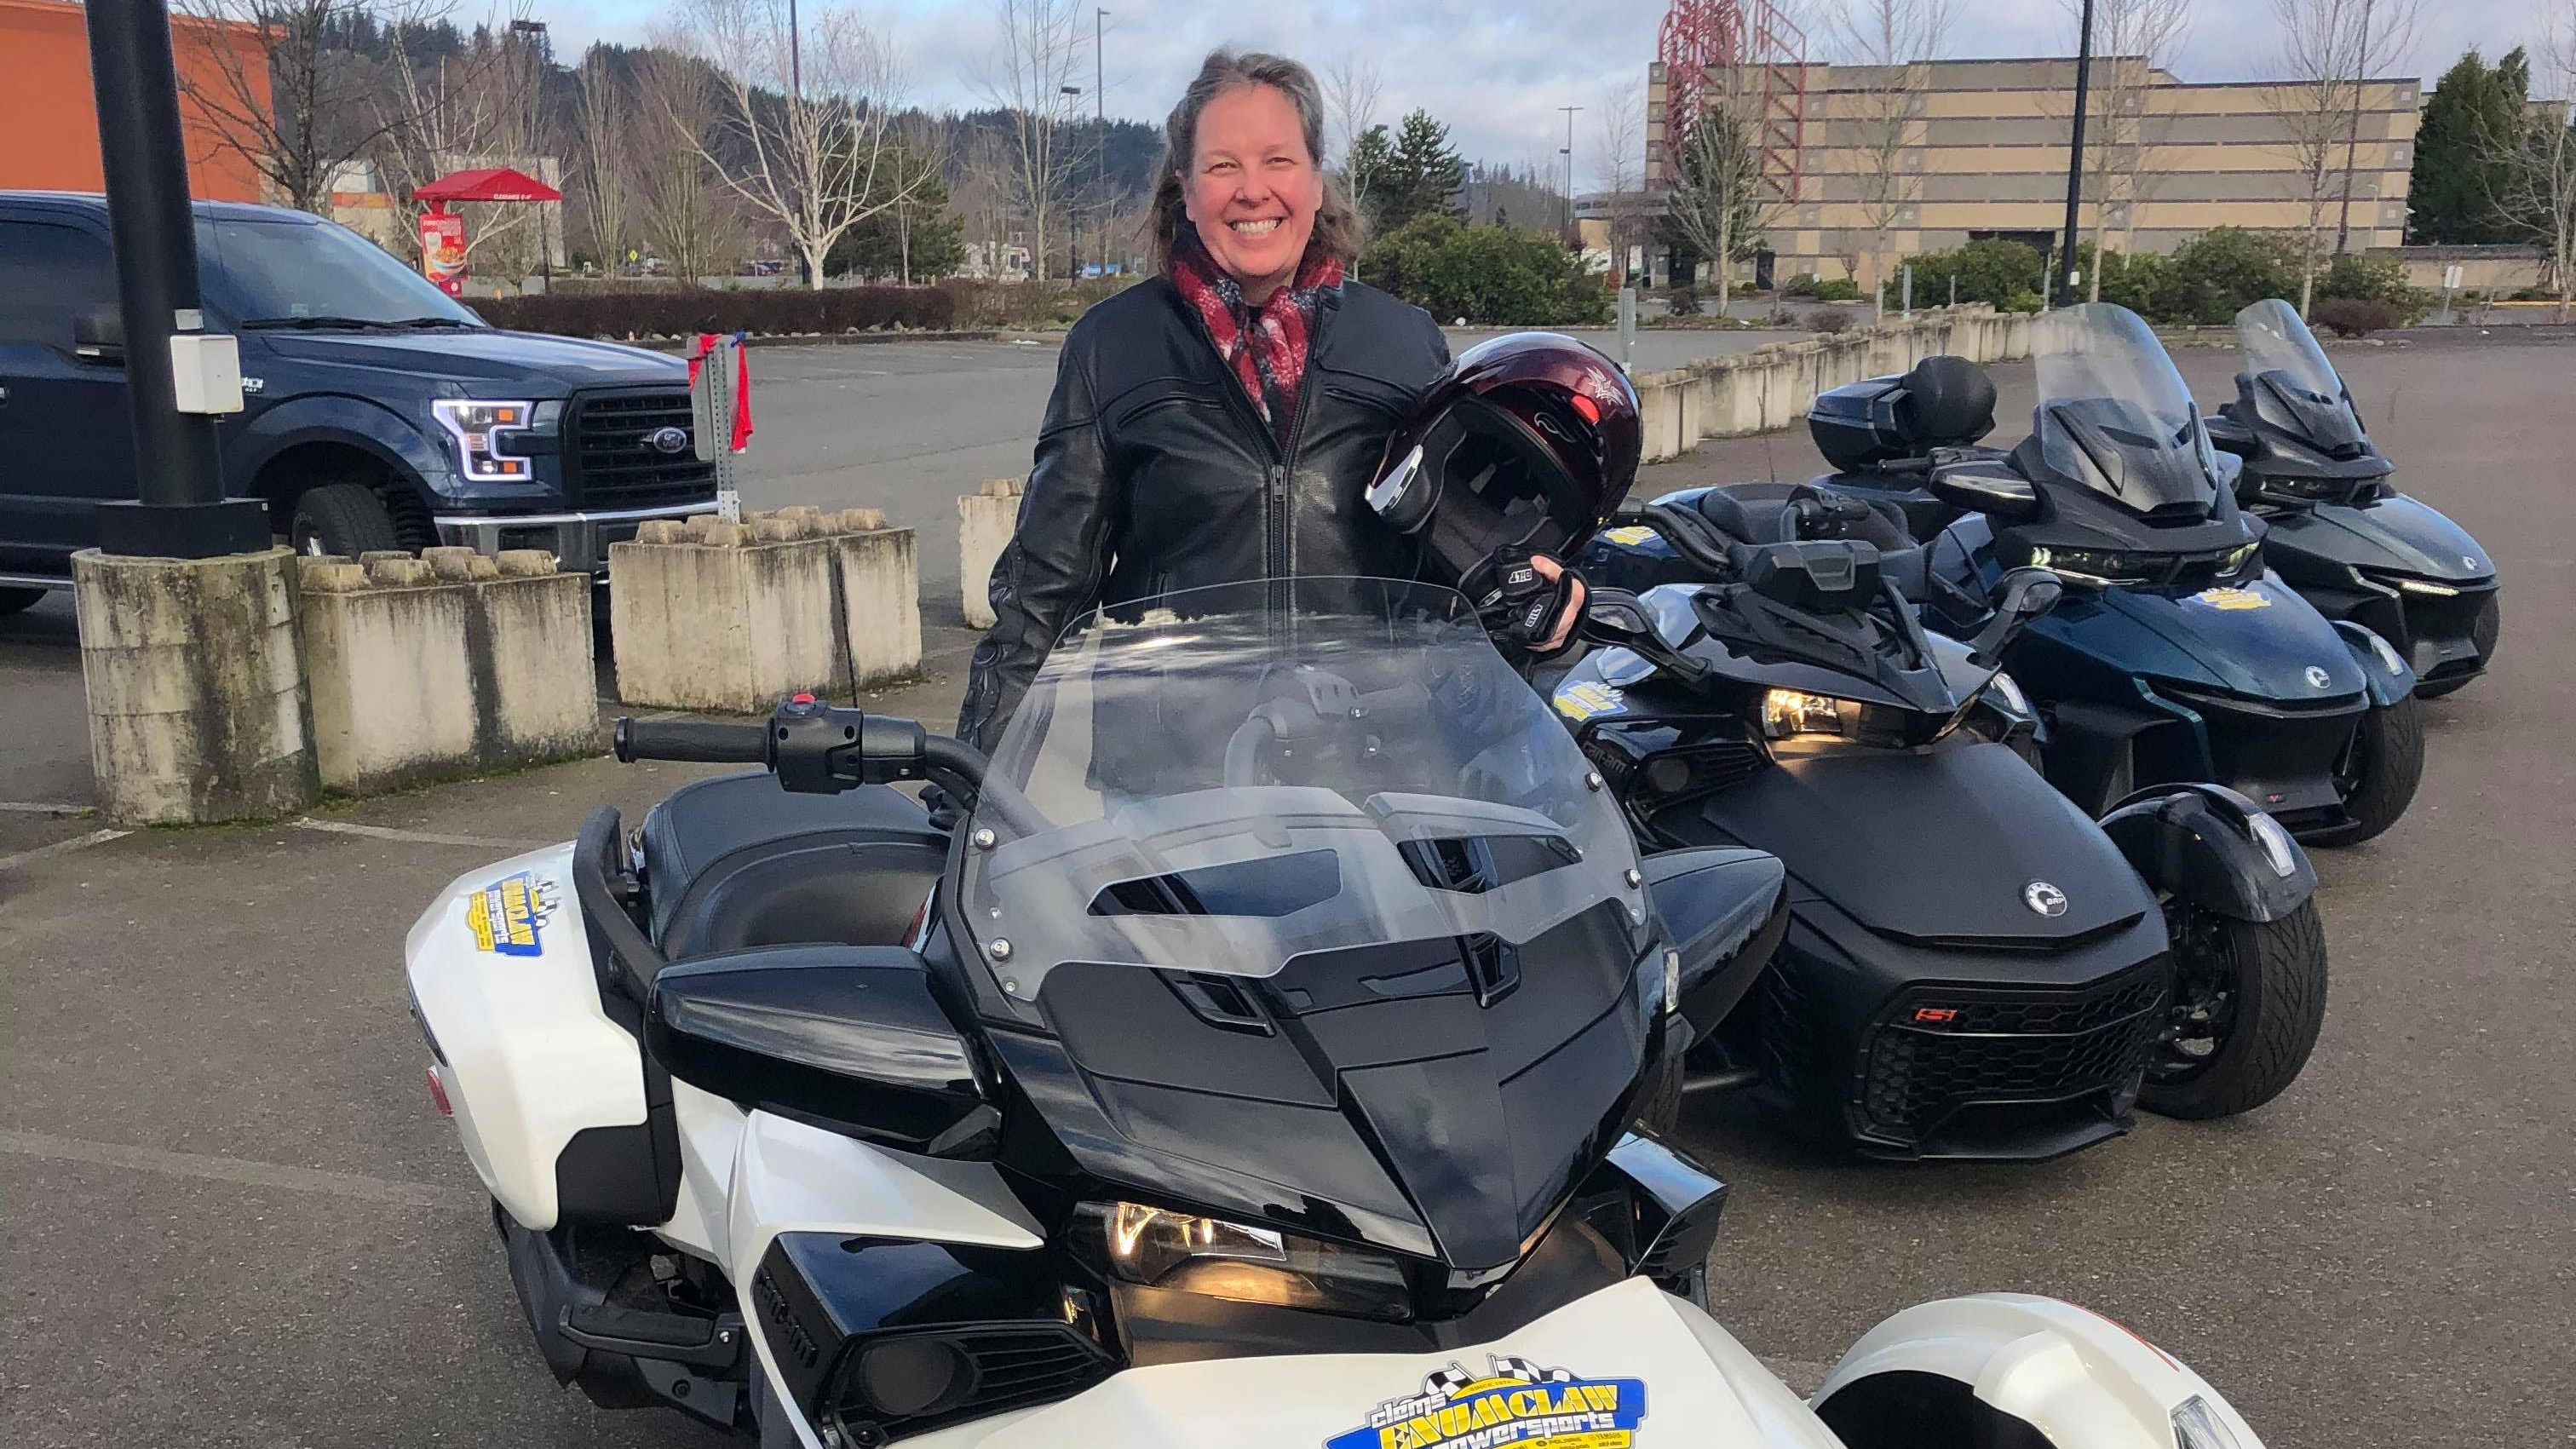 Lynn Hamby with her Can-Am spyder vehicle